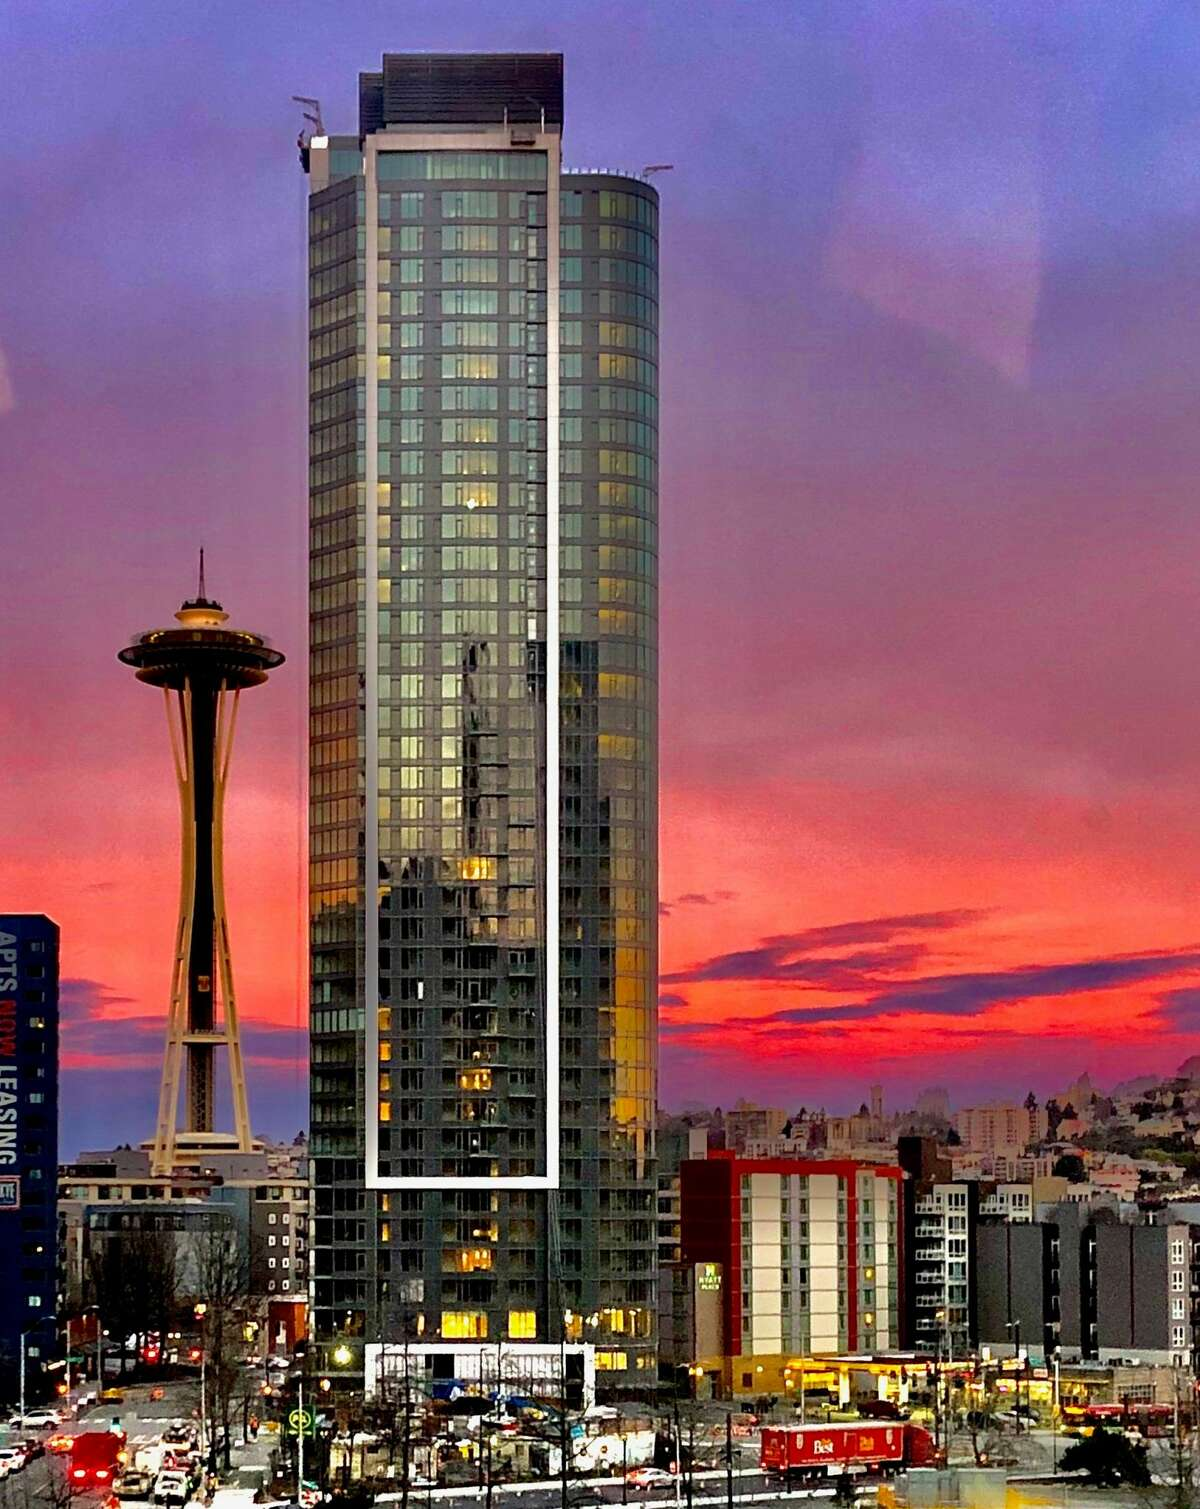 The Spire tower has forever changed the Seattle skyline. No buildings this tall are this level with the Space Needle. It's situated at the edge of zoning which requires buildings be limited to 85 feet (approximately eight stories) high.